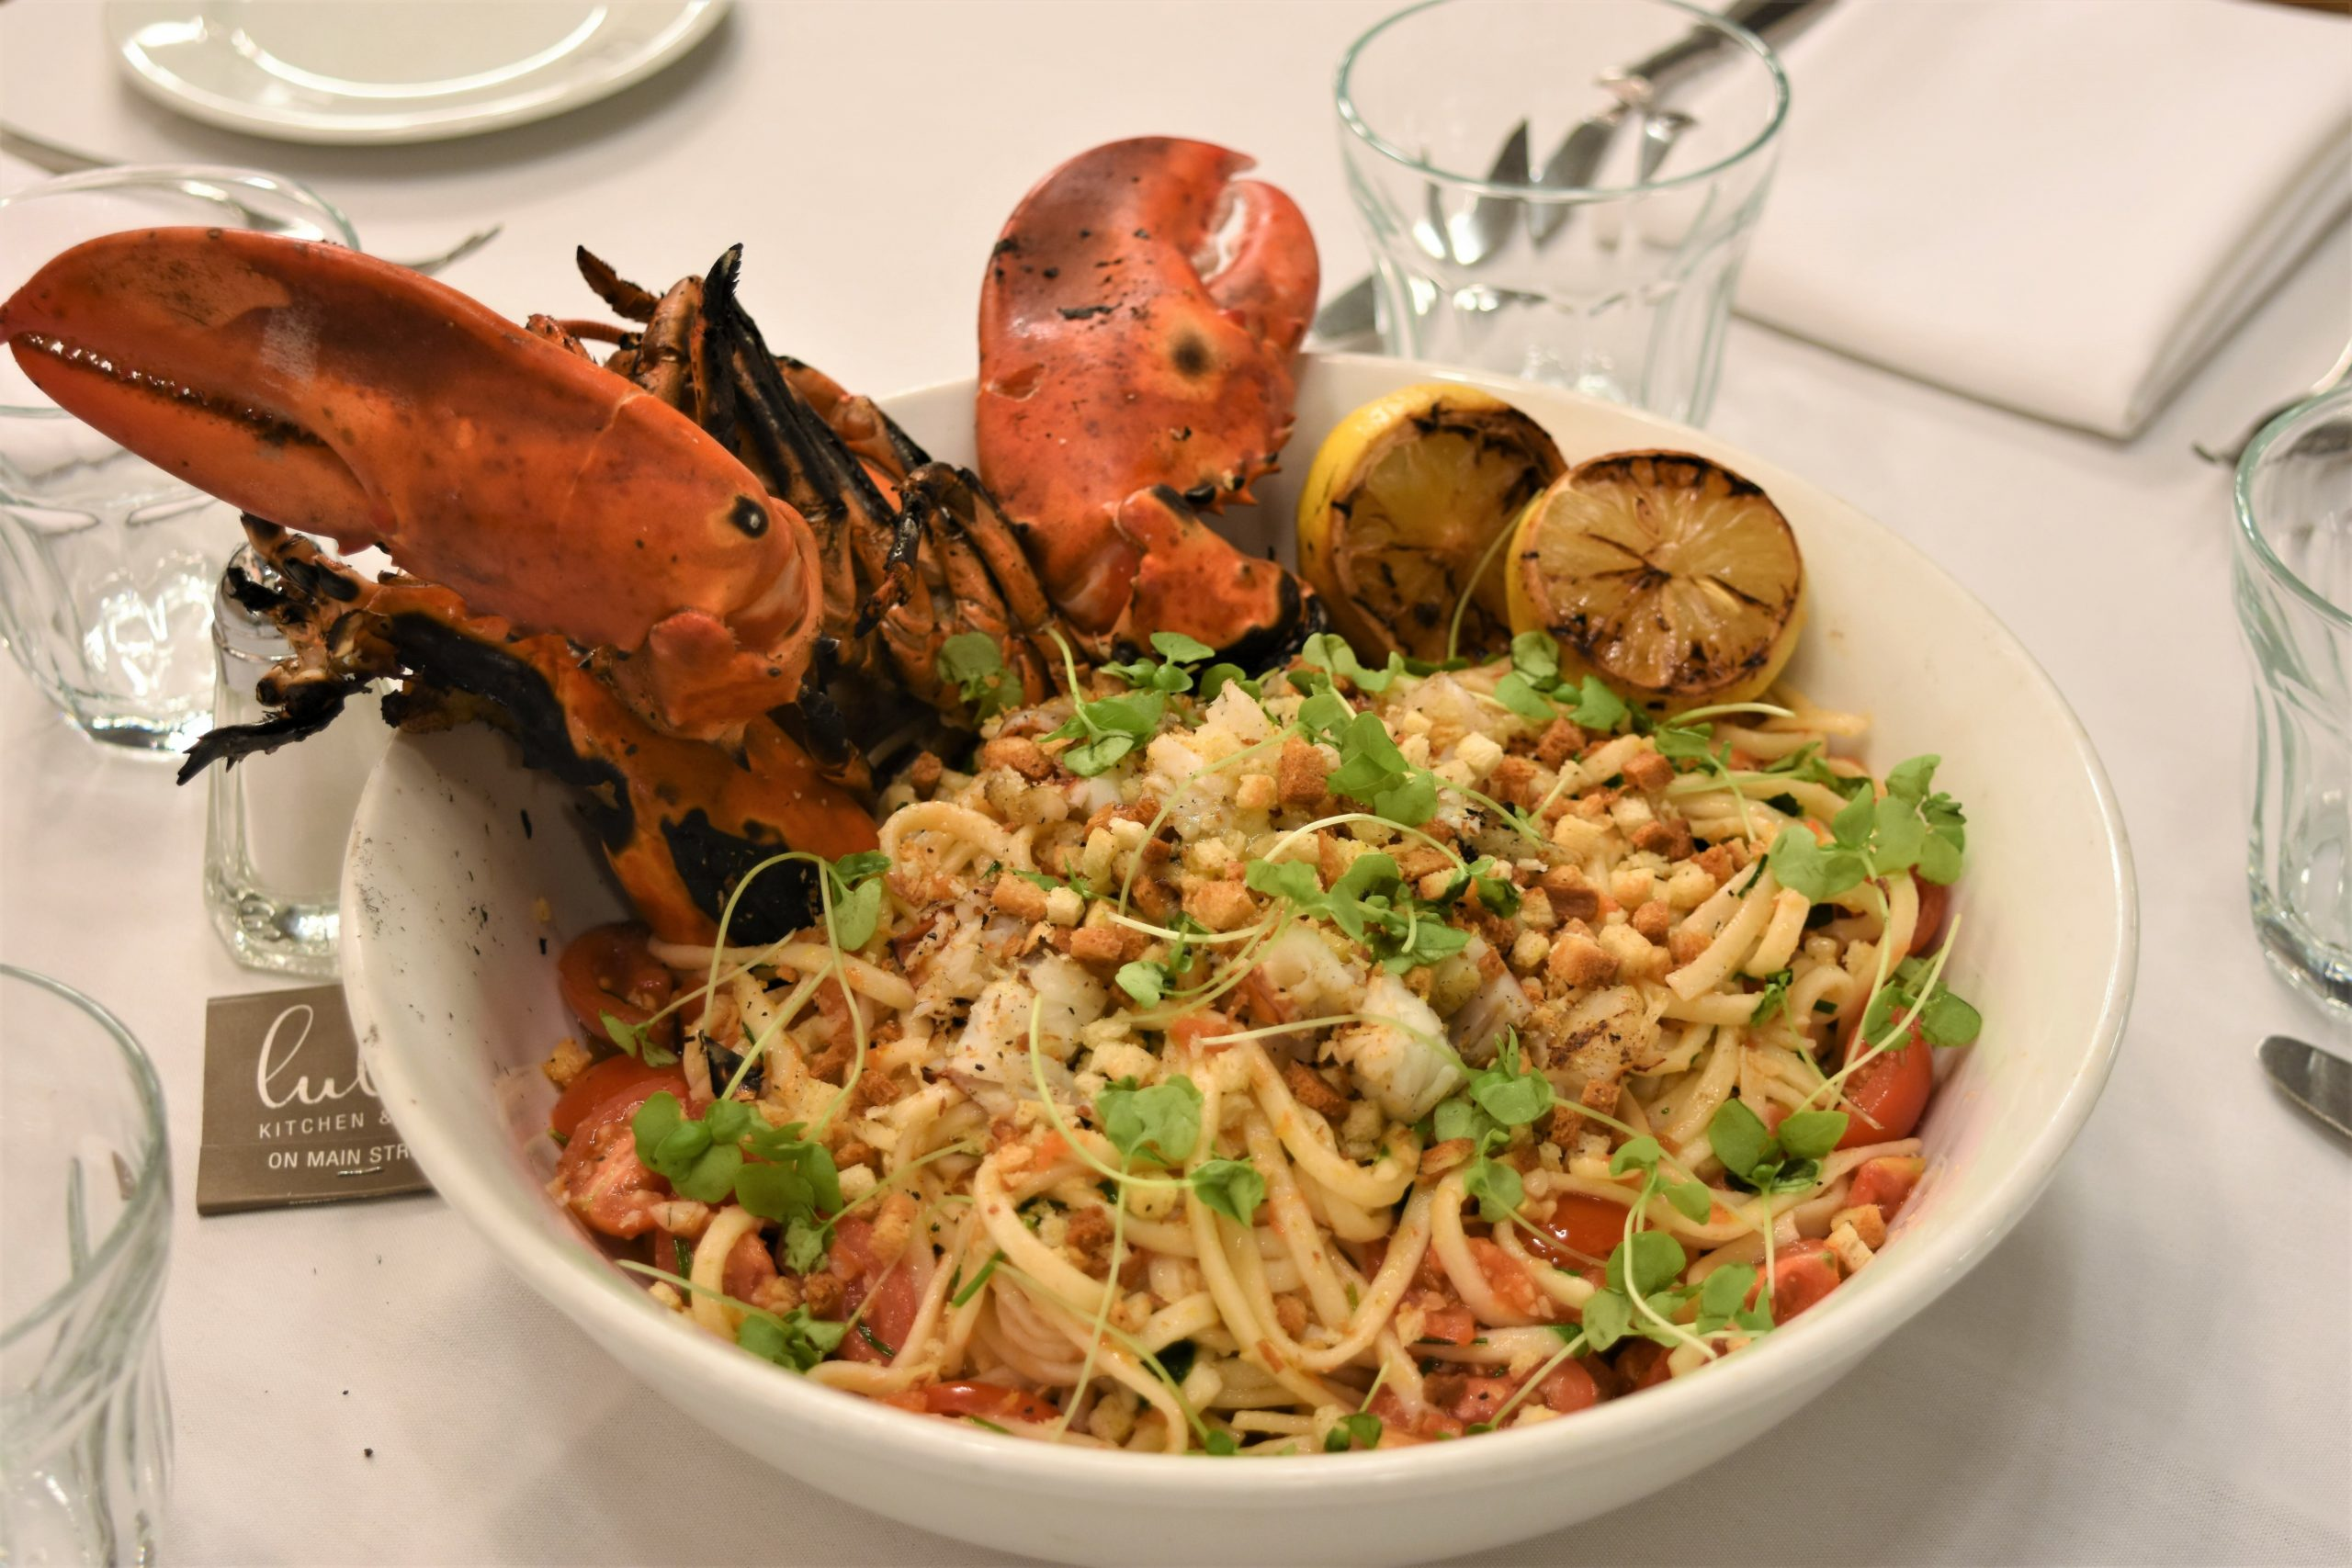 Lulu Kitchen & Bar's lobster pasta for two.